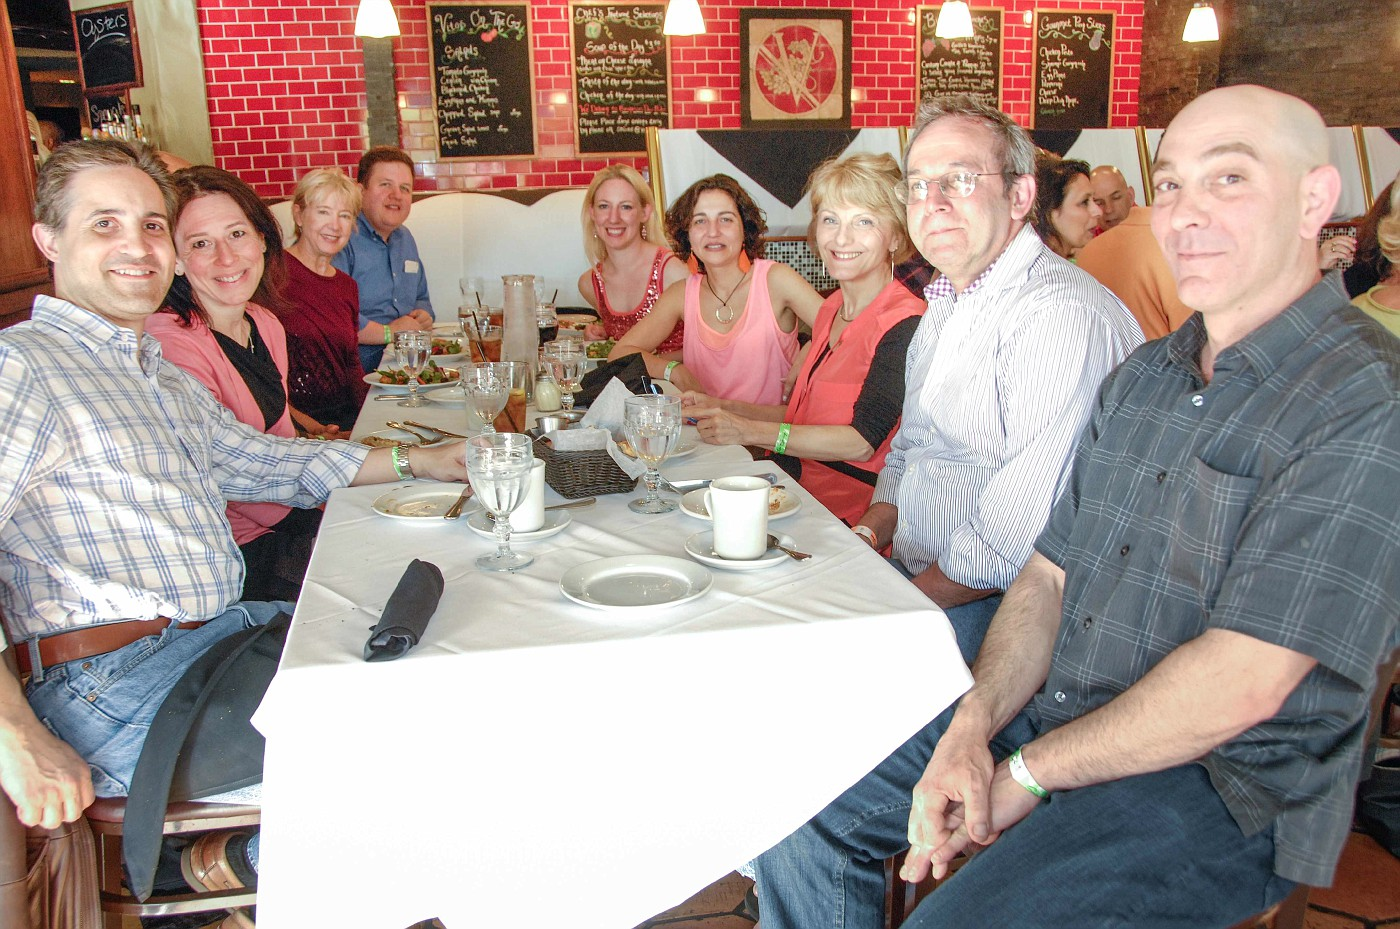 SwingShoes Group Dinner at Swingin Into Spring - Table 1